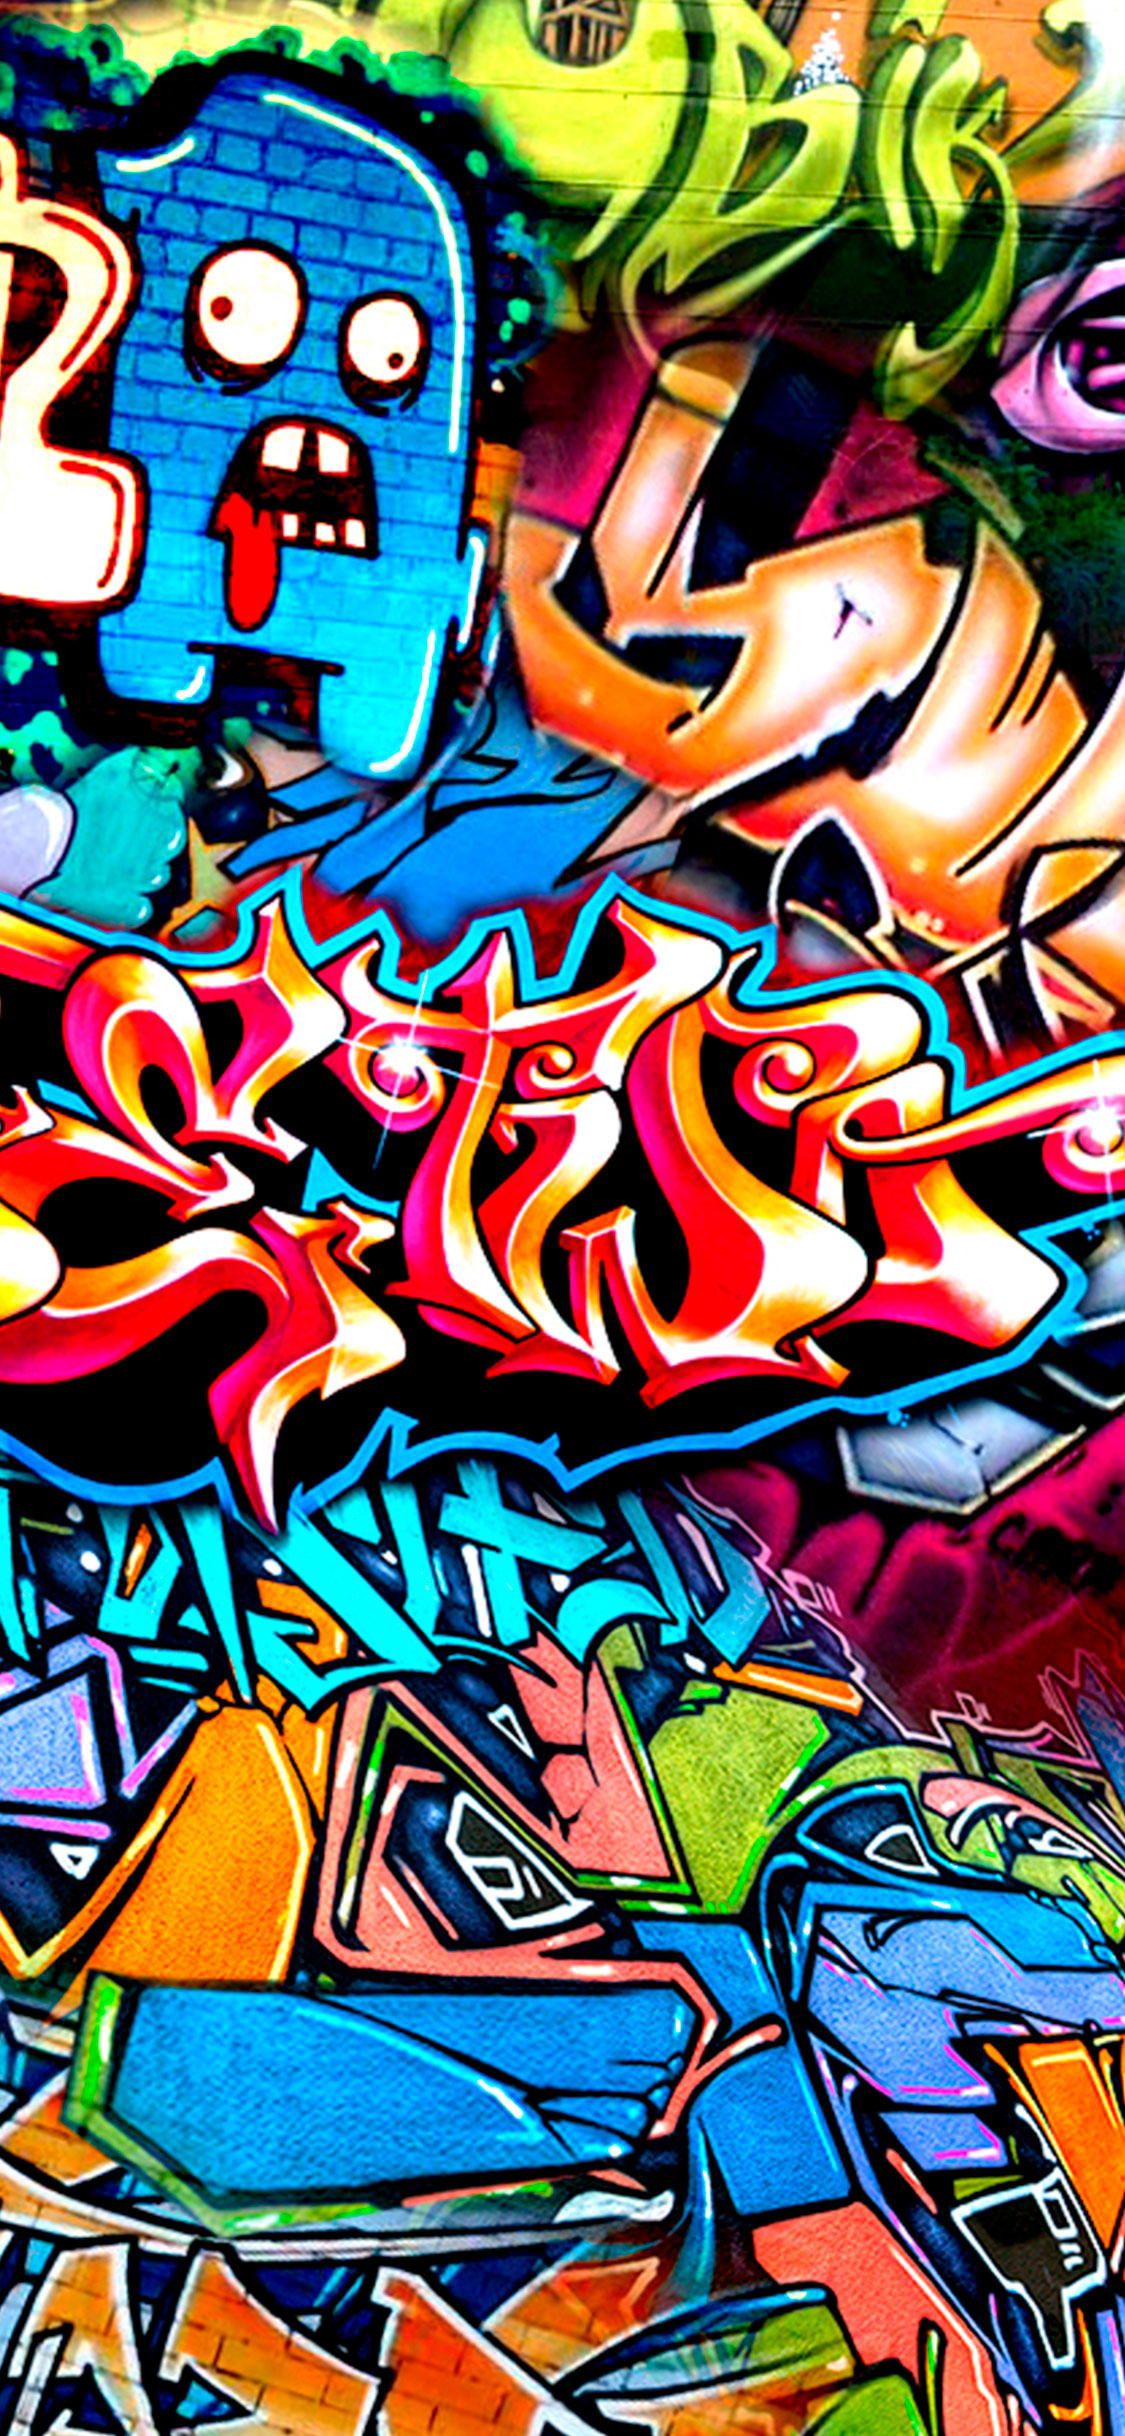 iPhone wallpaper graffiti wall Fonds d'écran iPhone du 16/05/2018